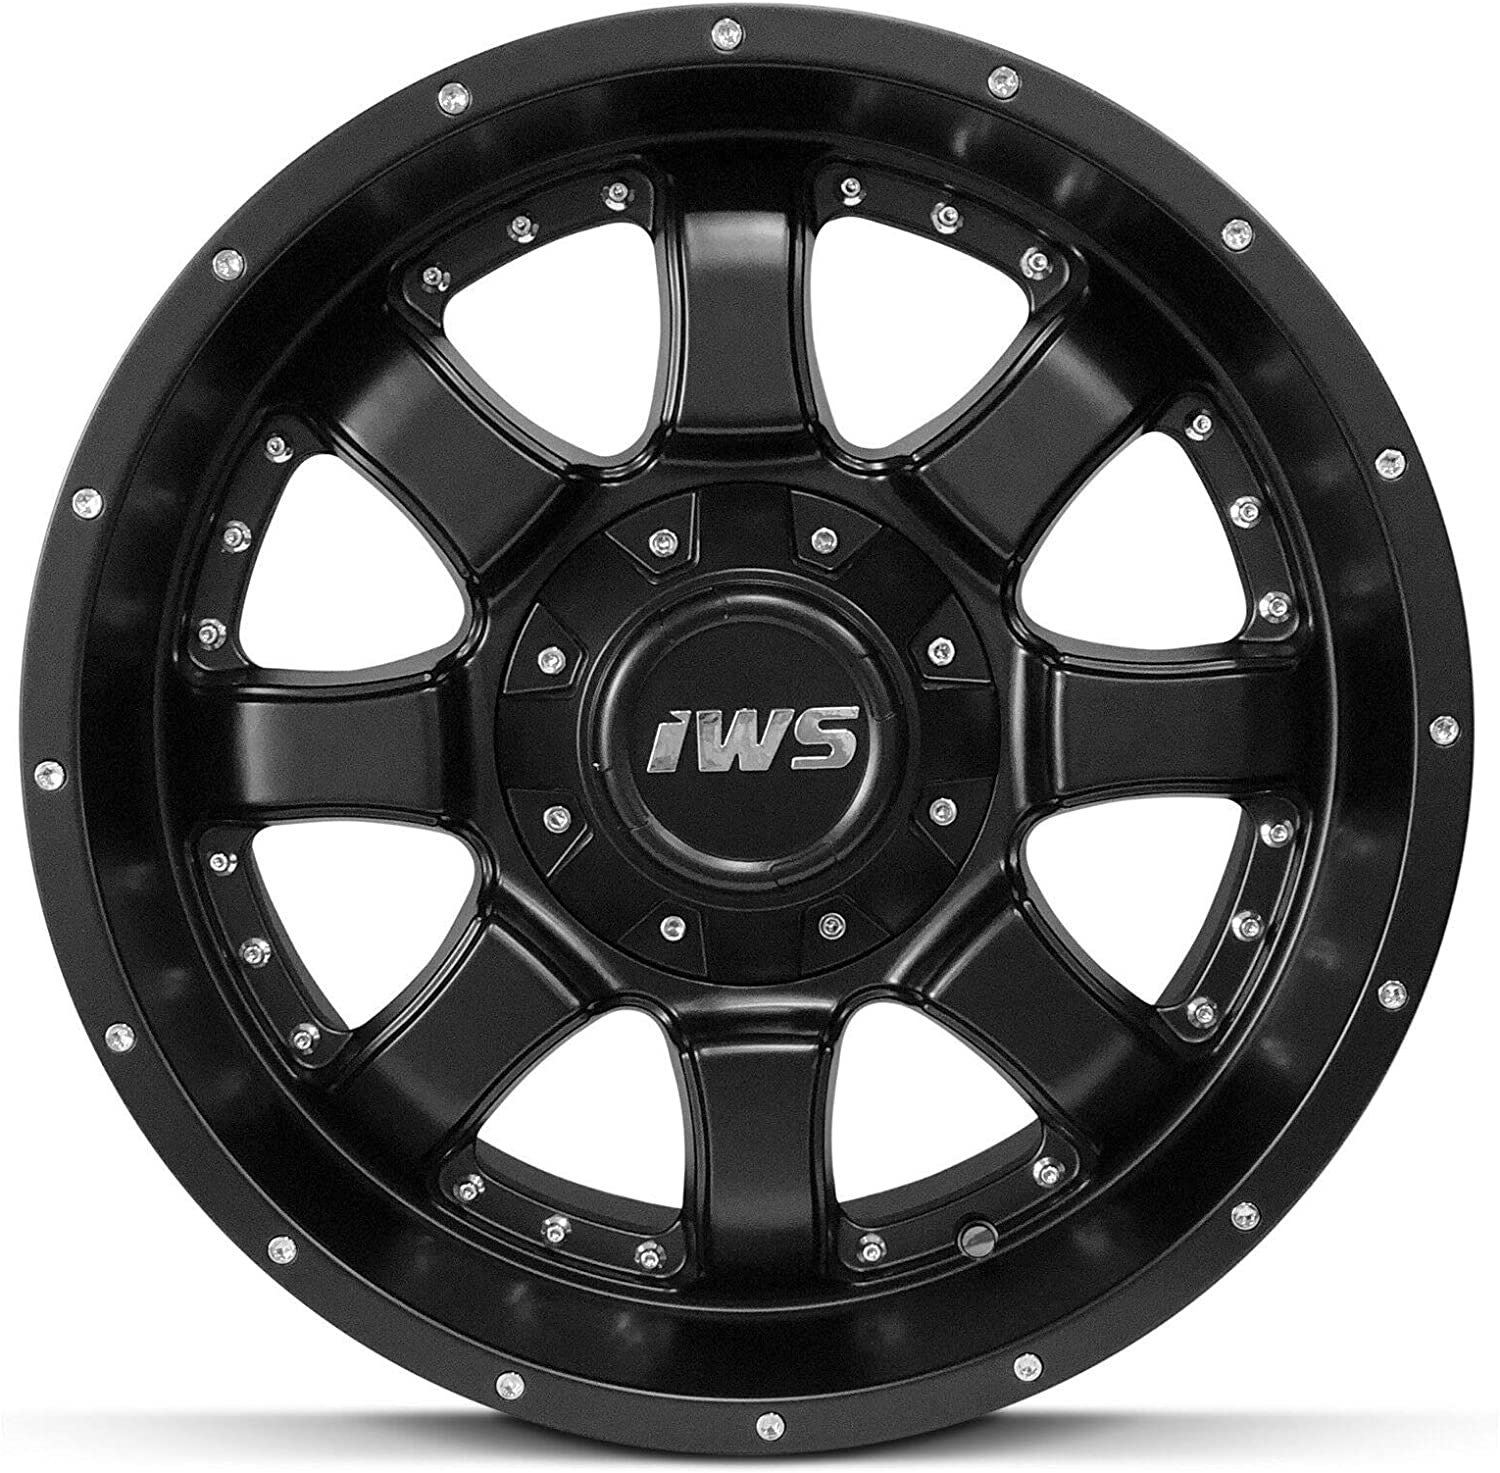 Bill Smith Auto Replacement For 17X9 Inch Matte Black Wheel Rim 6x5.5 Fits Ford Chevy GMC 6x139.7 6x135-12mm